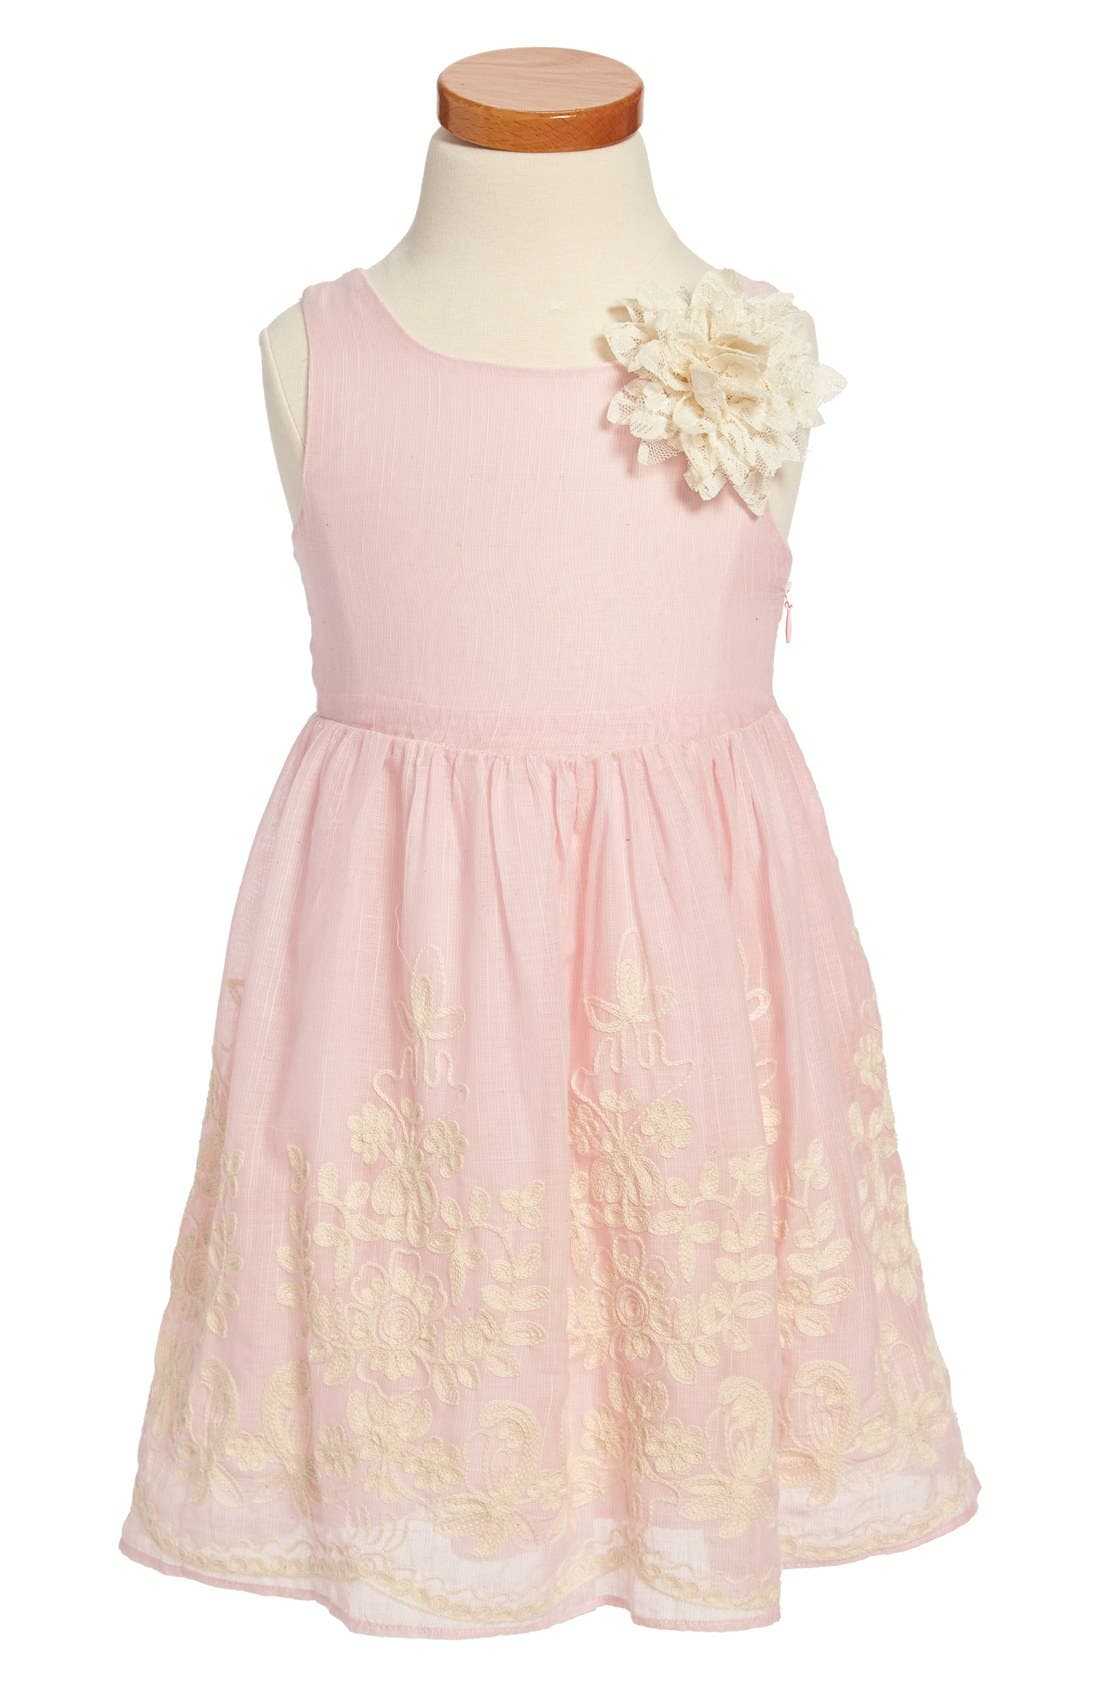 Main Image - Pippa & Julie Embroidered Cotton Voile Dress (Toddler Girls & Little Girls)